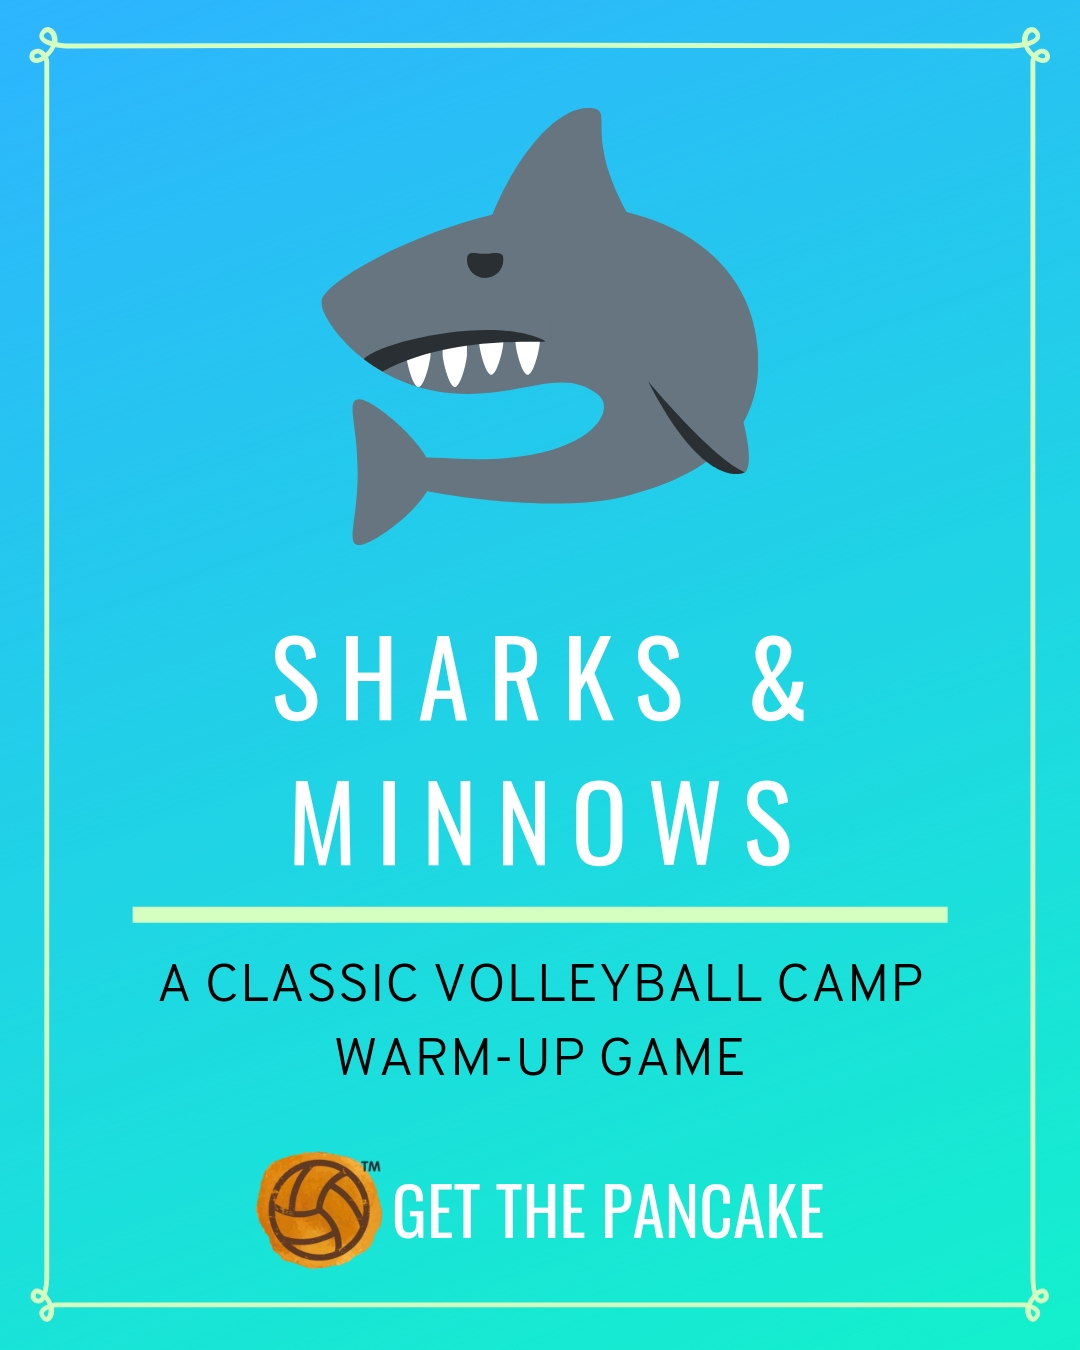 Sharks and Minnows Volleyball Camp Warm-Up.jpg